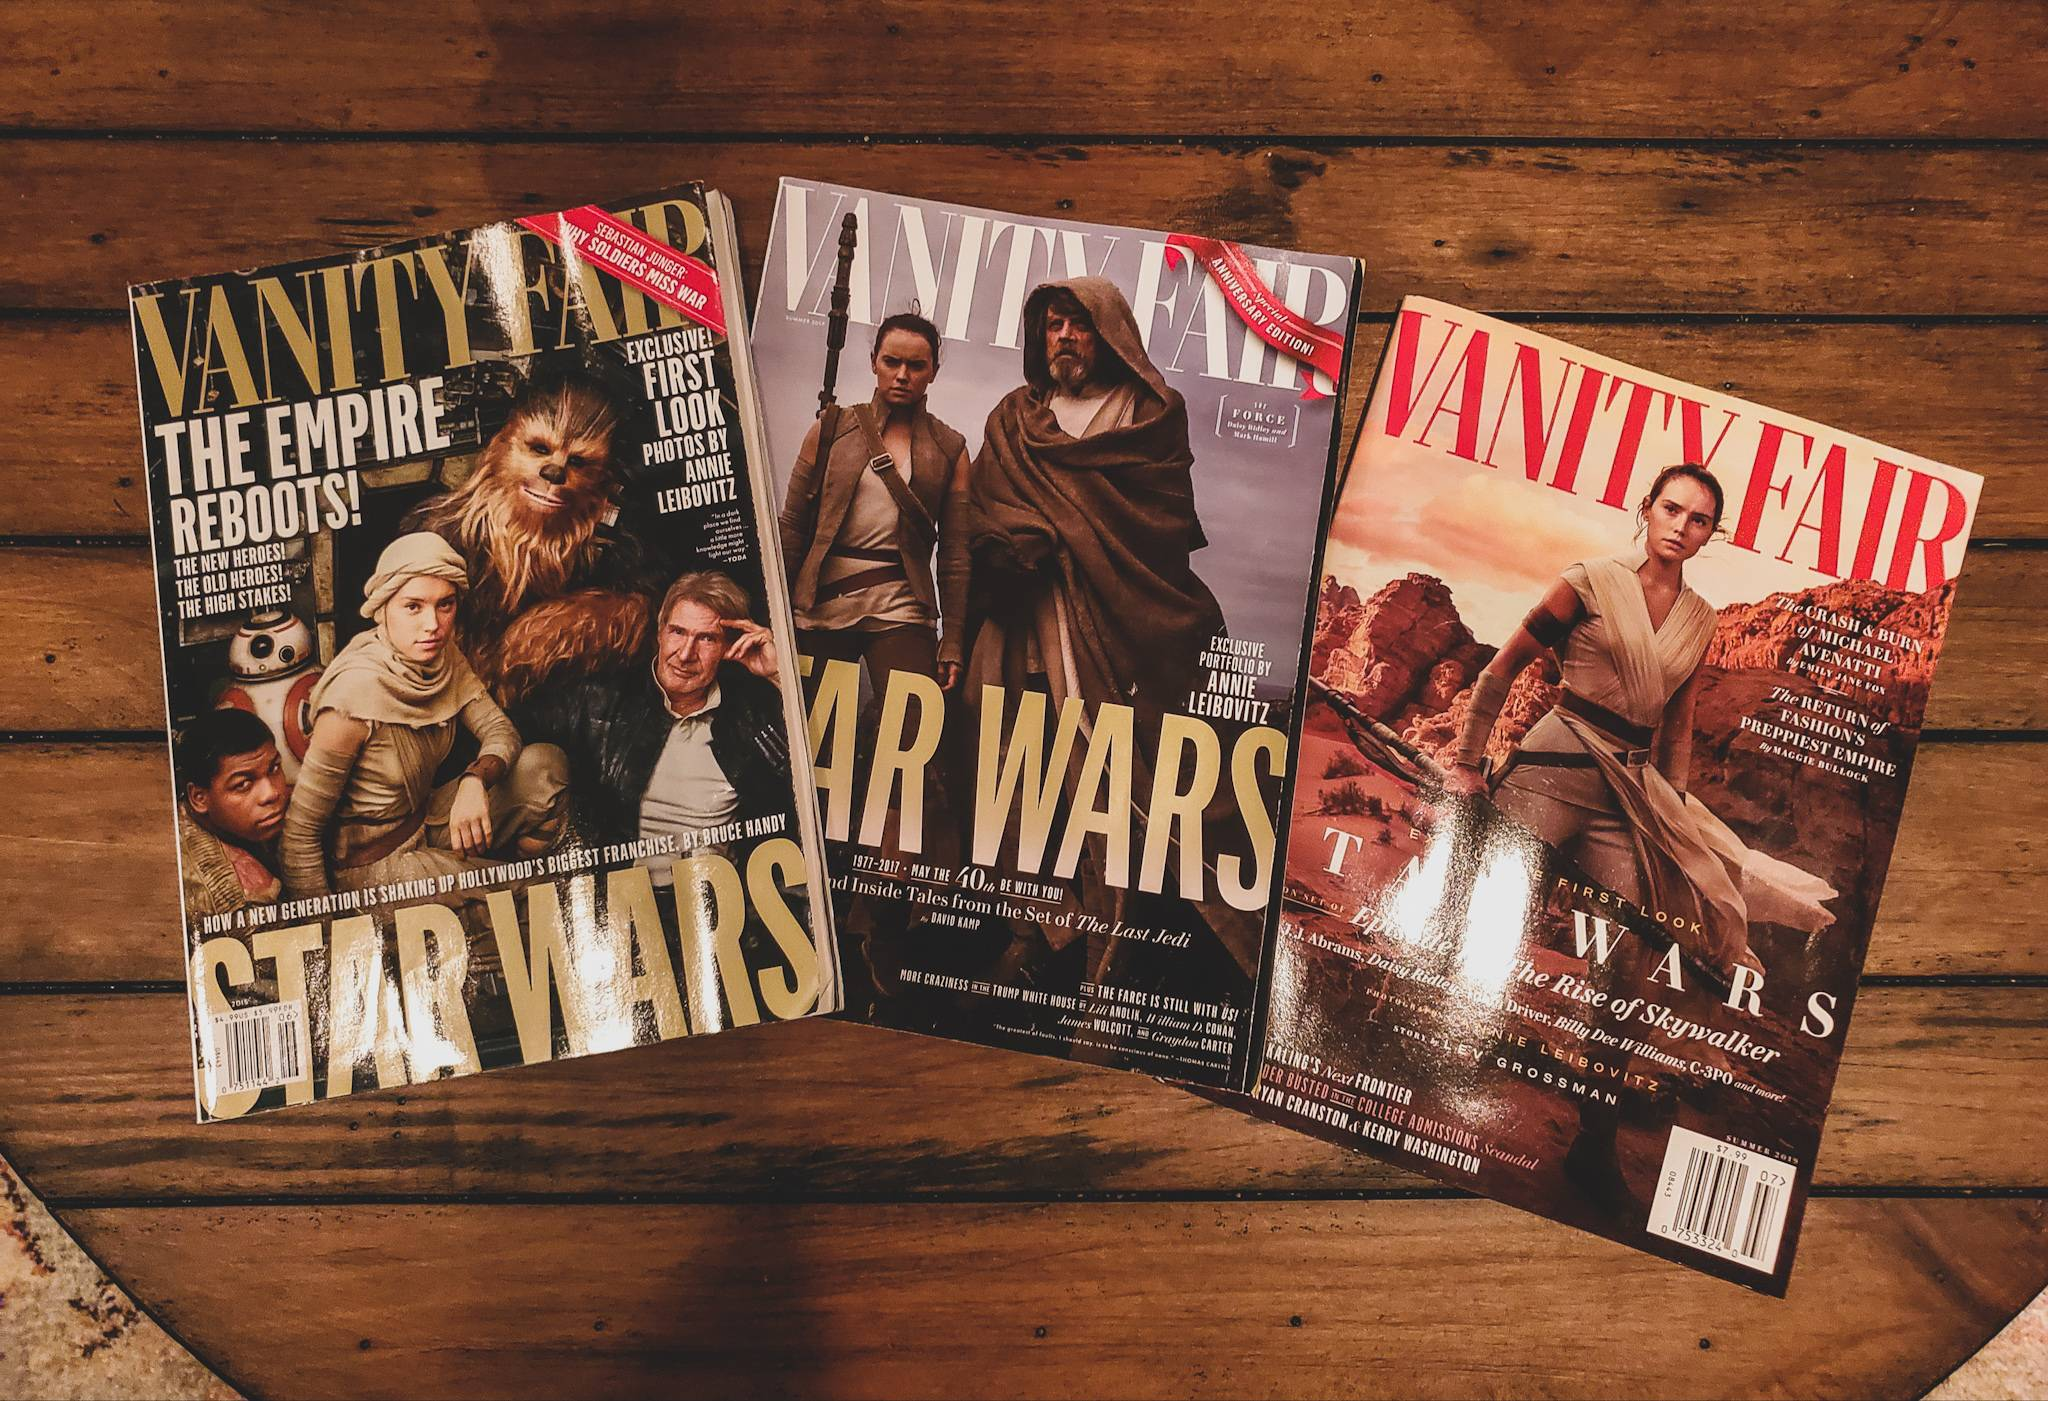 Finally picked up the latest Vanity Fair issue to round out the trilogy